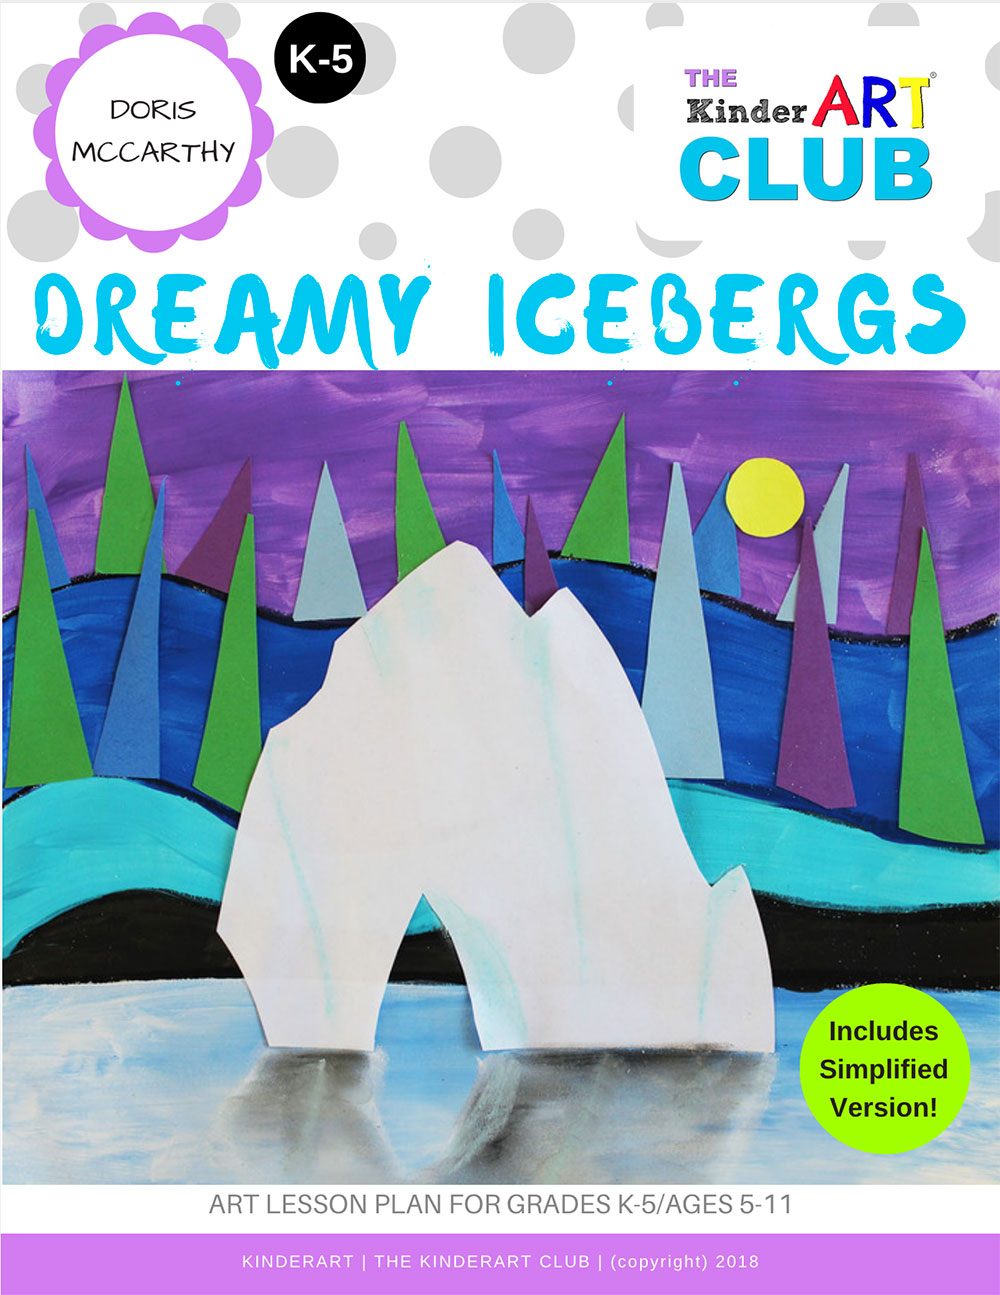 Become a member of The KinderArt Club - art lesson